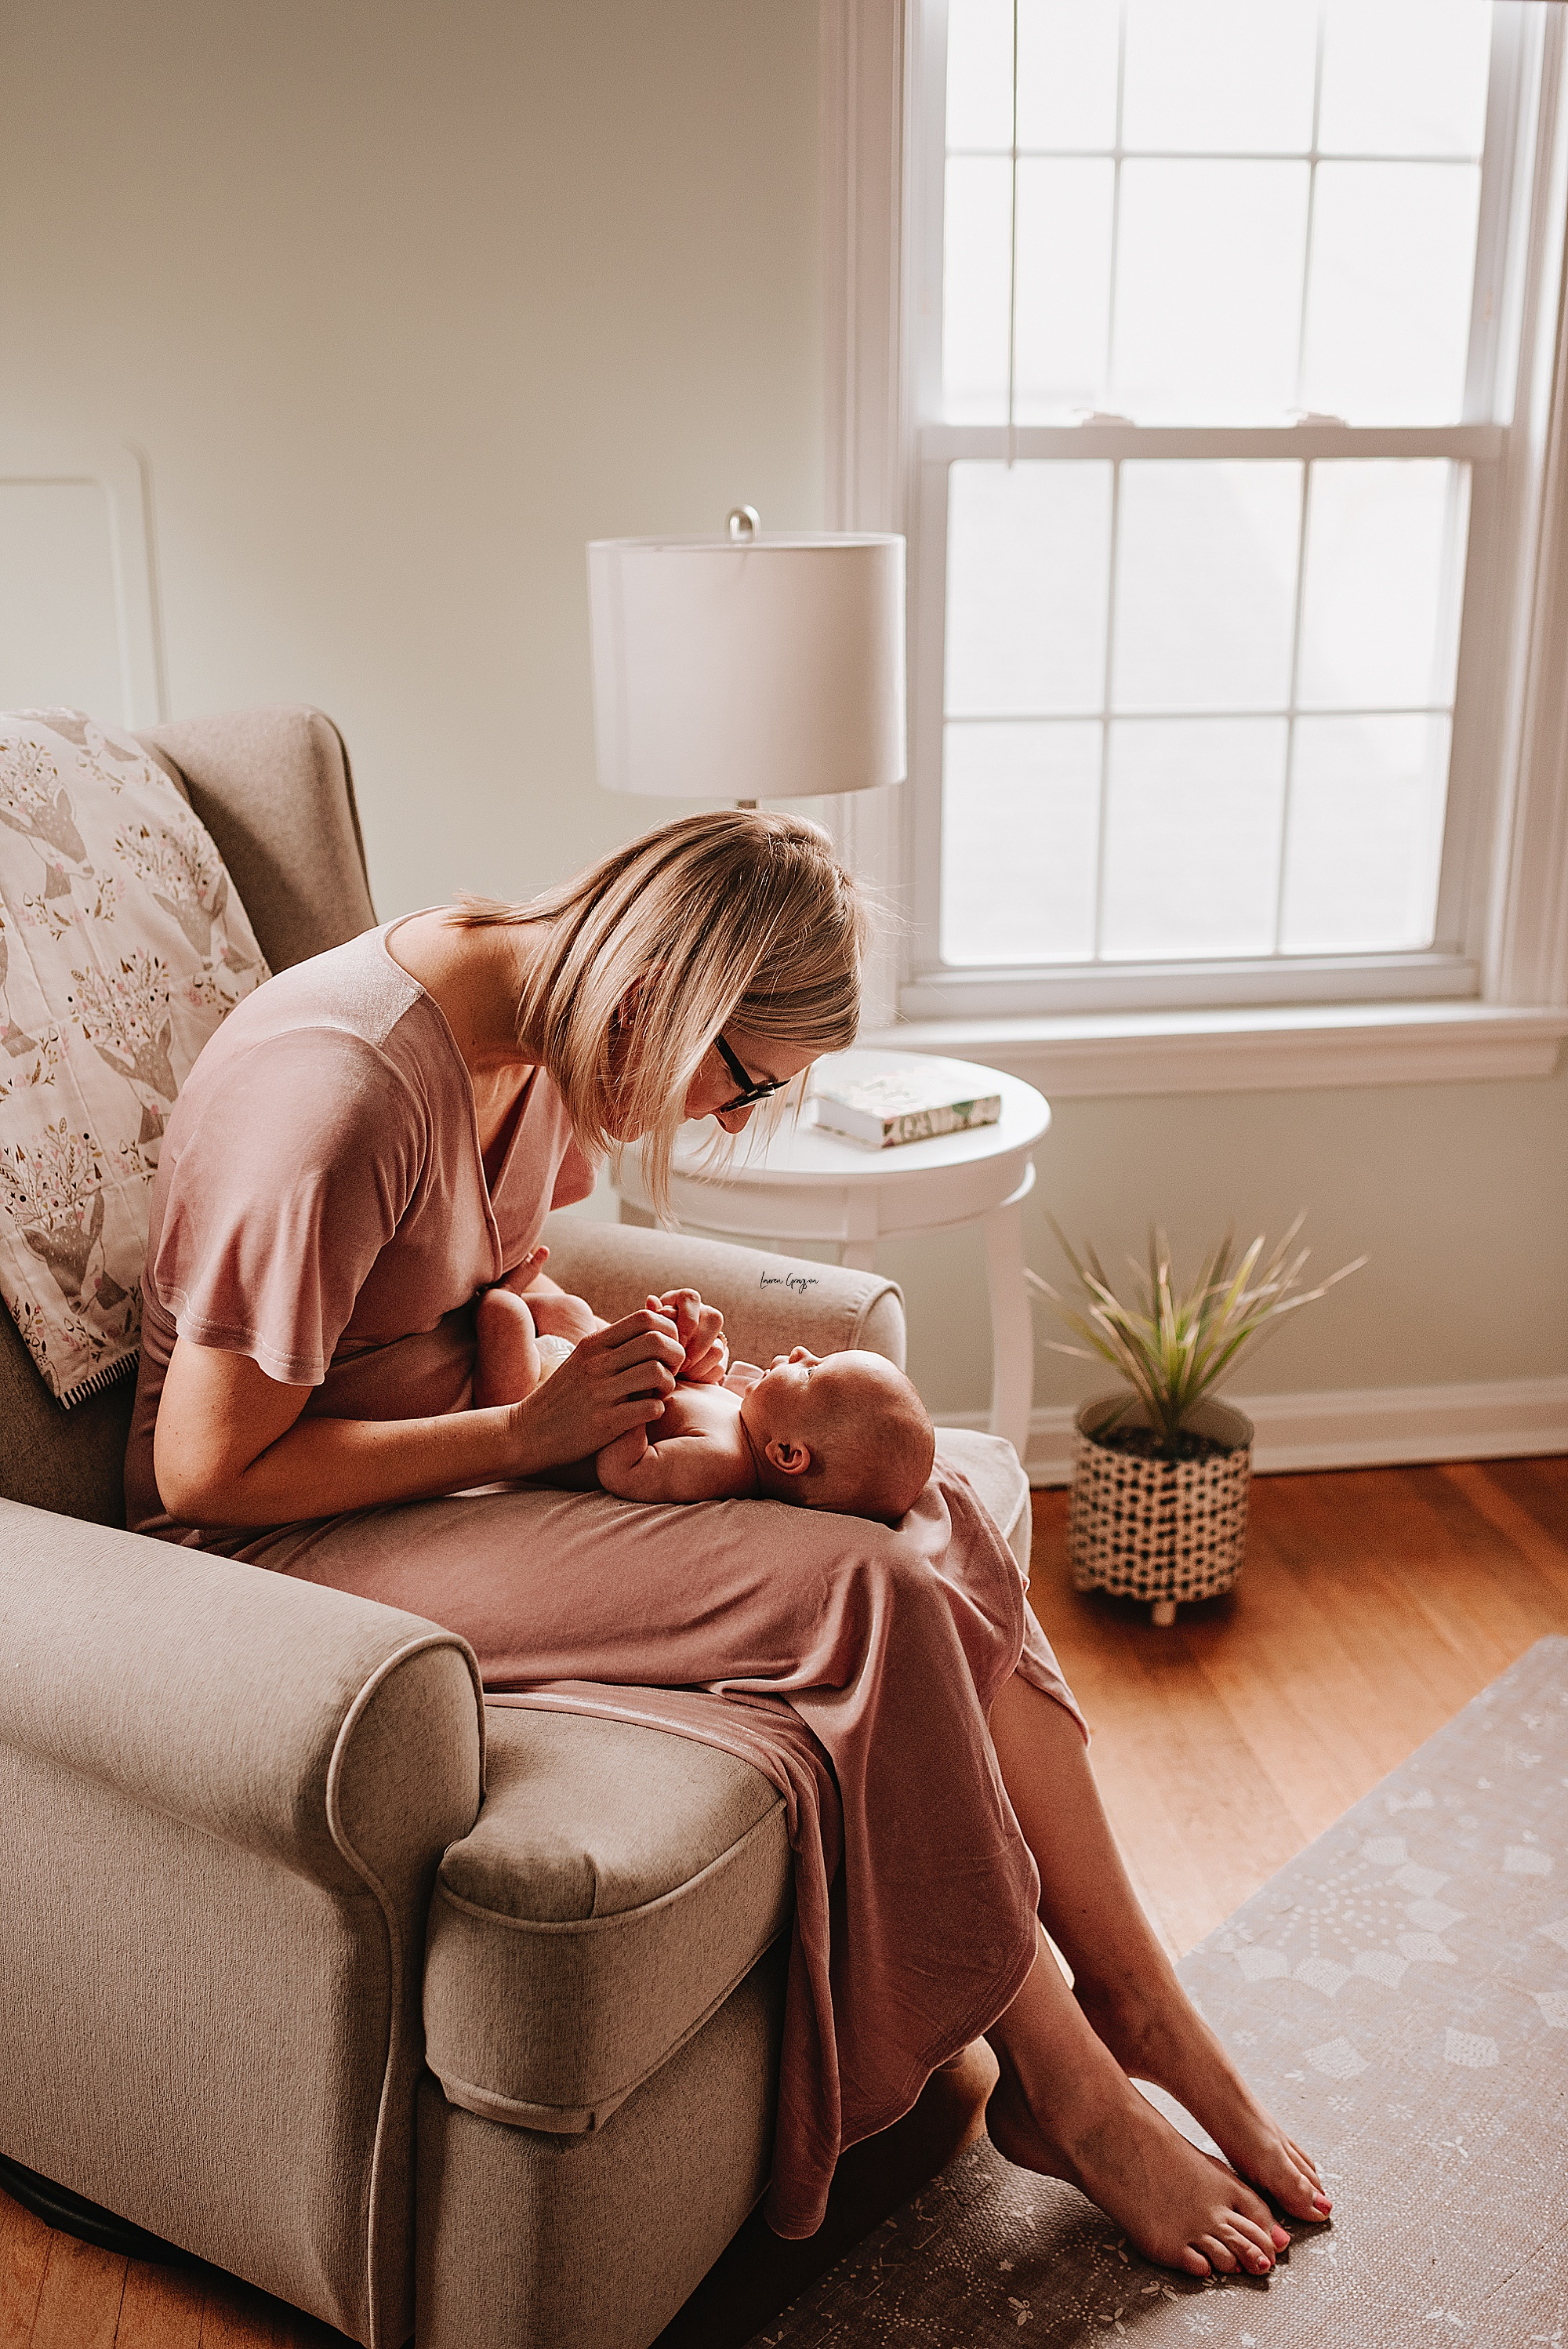 akron newborn photographer, lauren grayson photography, lifestyle at home family and baby photo session